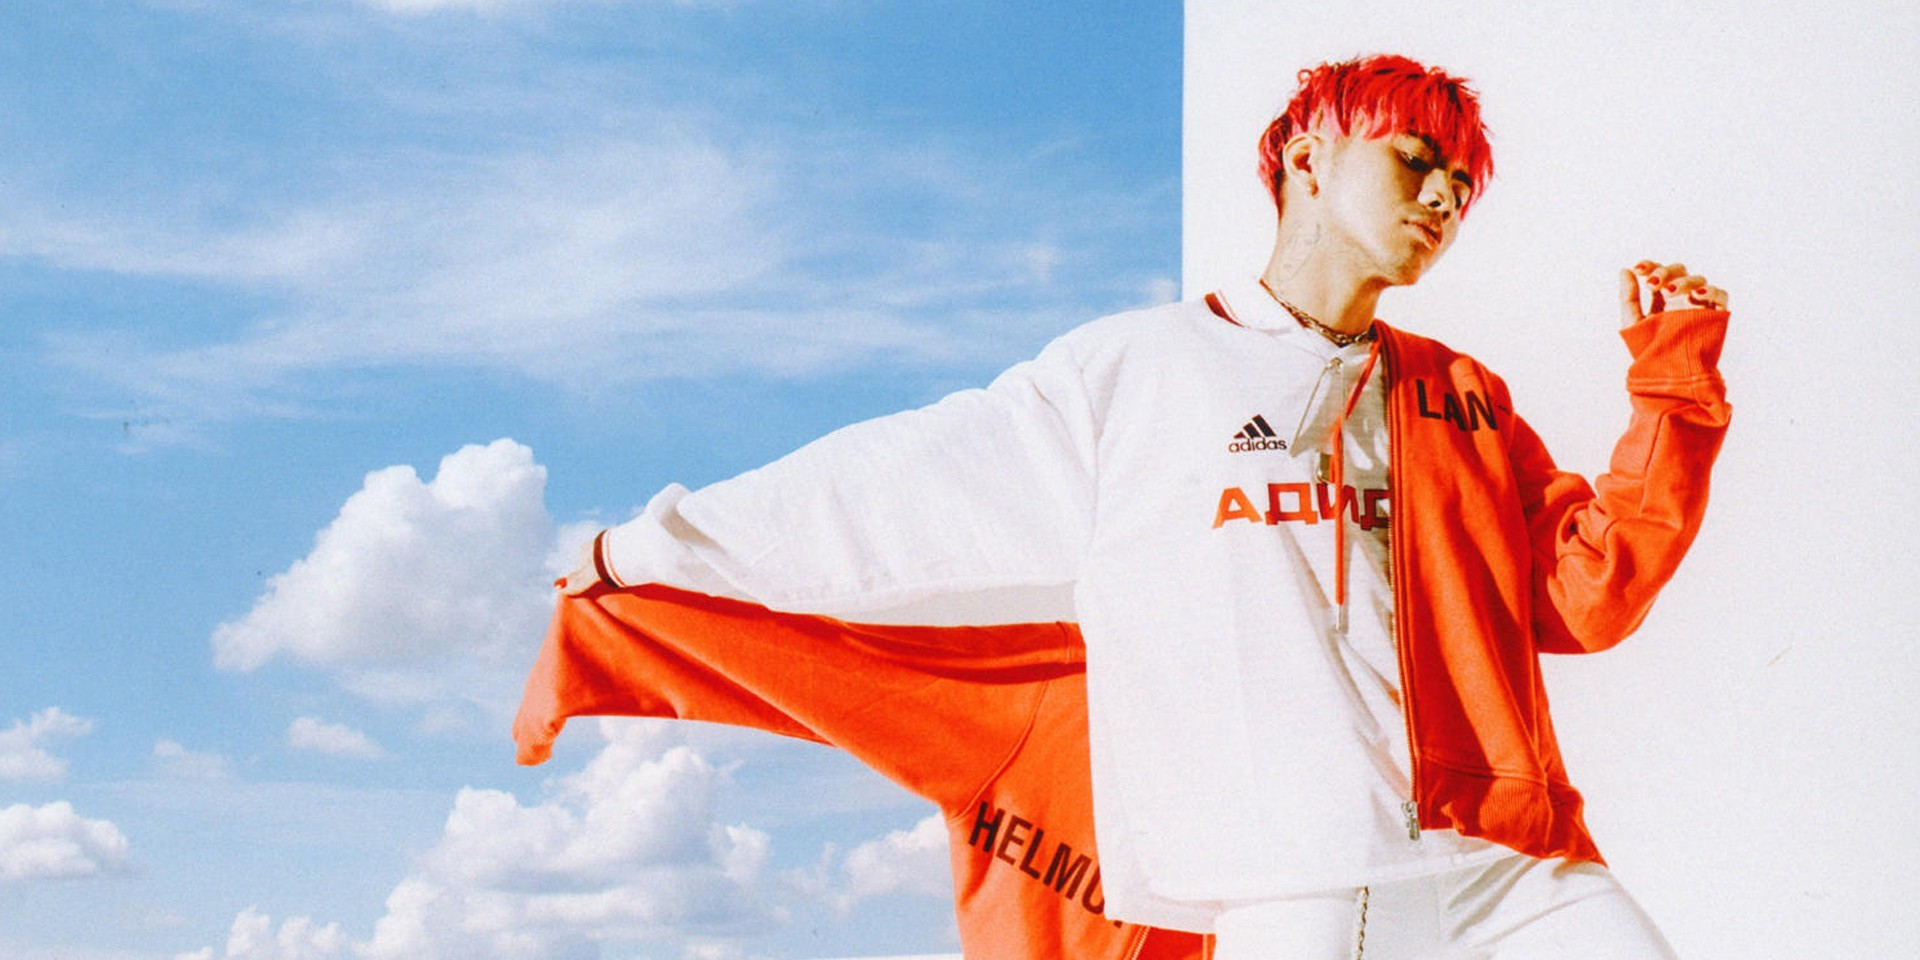 no rome unveils highly praised EP RIP Indo Hisashi, featuring The 1975 – listen